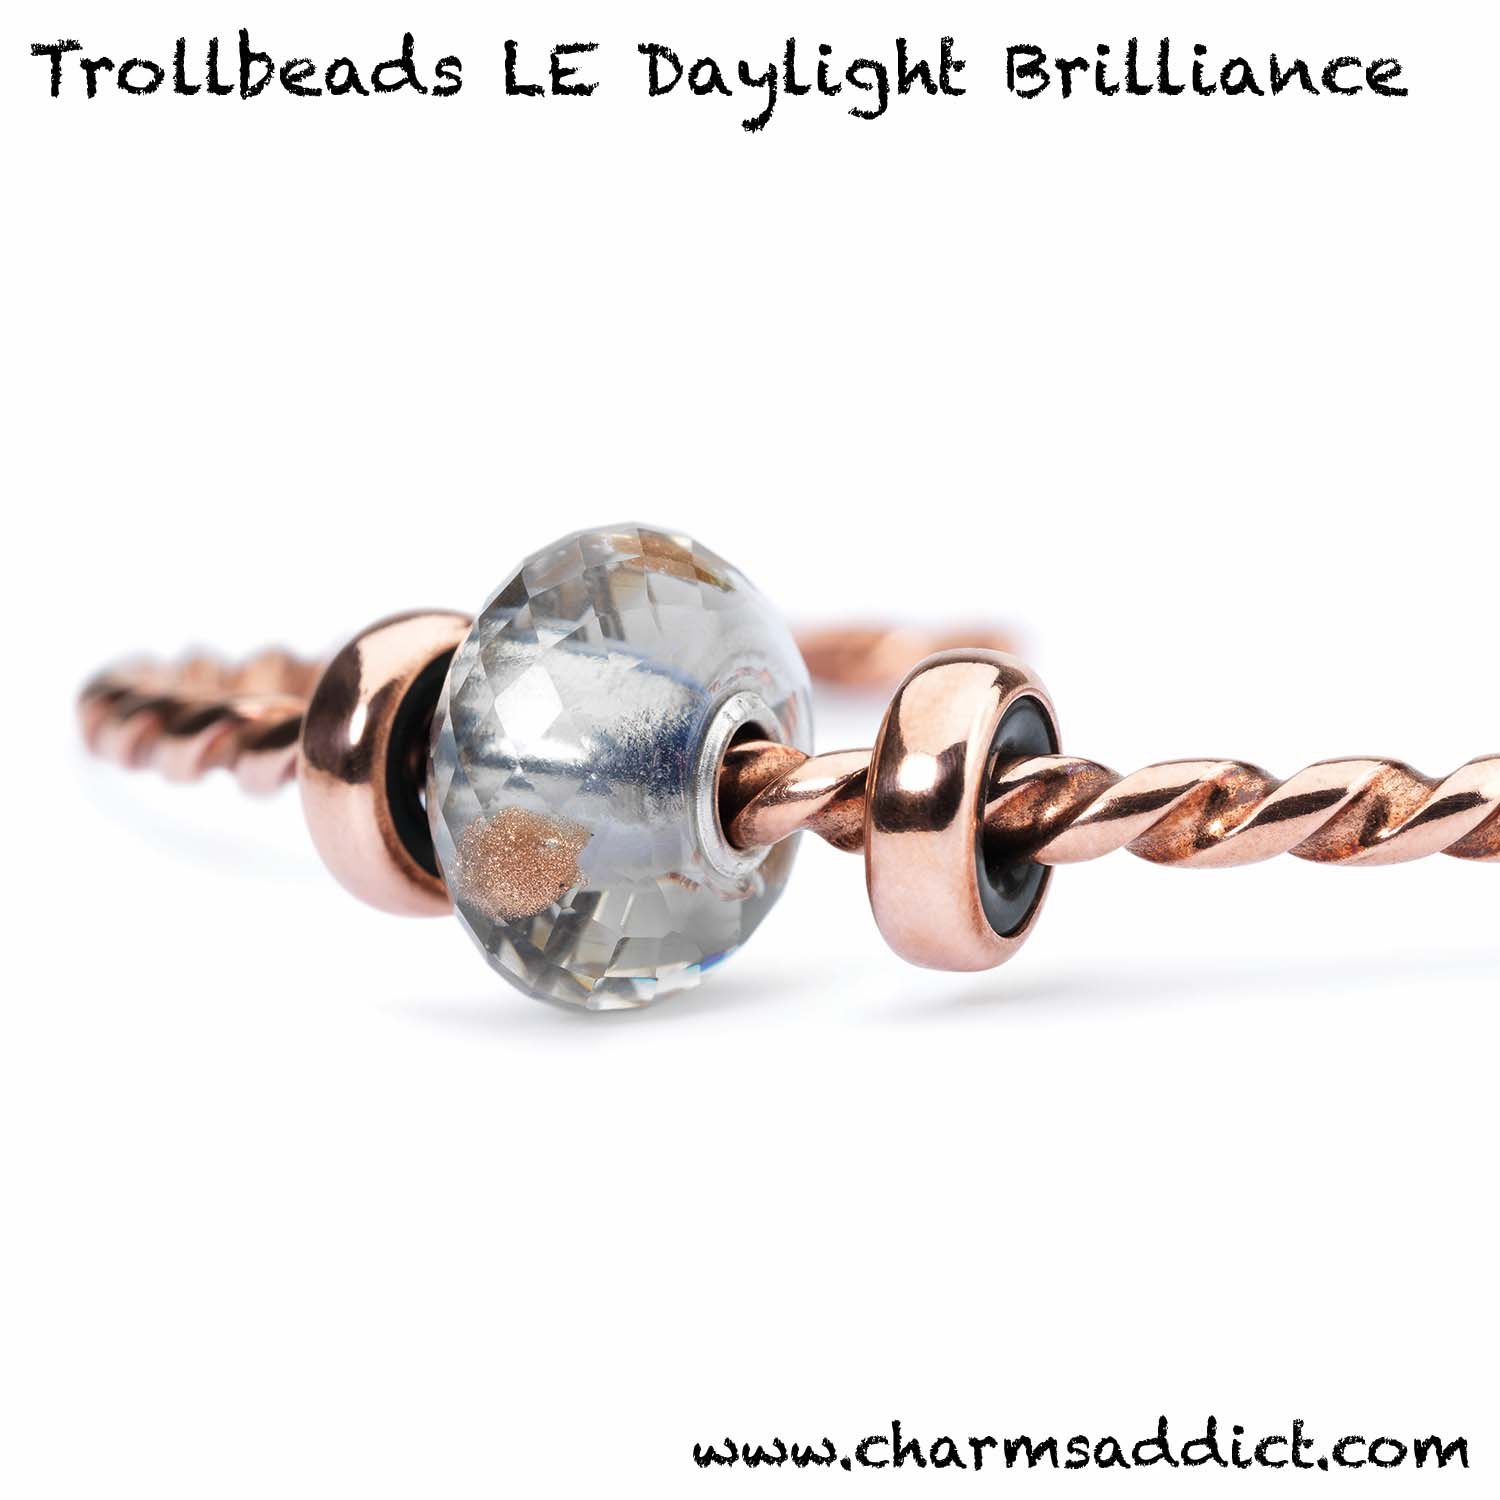 Trollbeads Black Friday 2016 Charms Addict